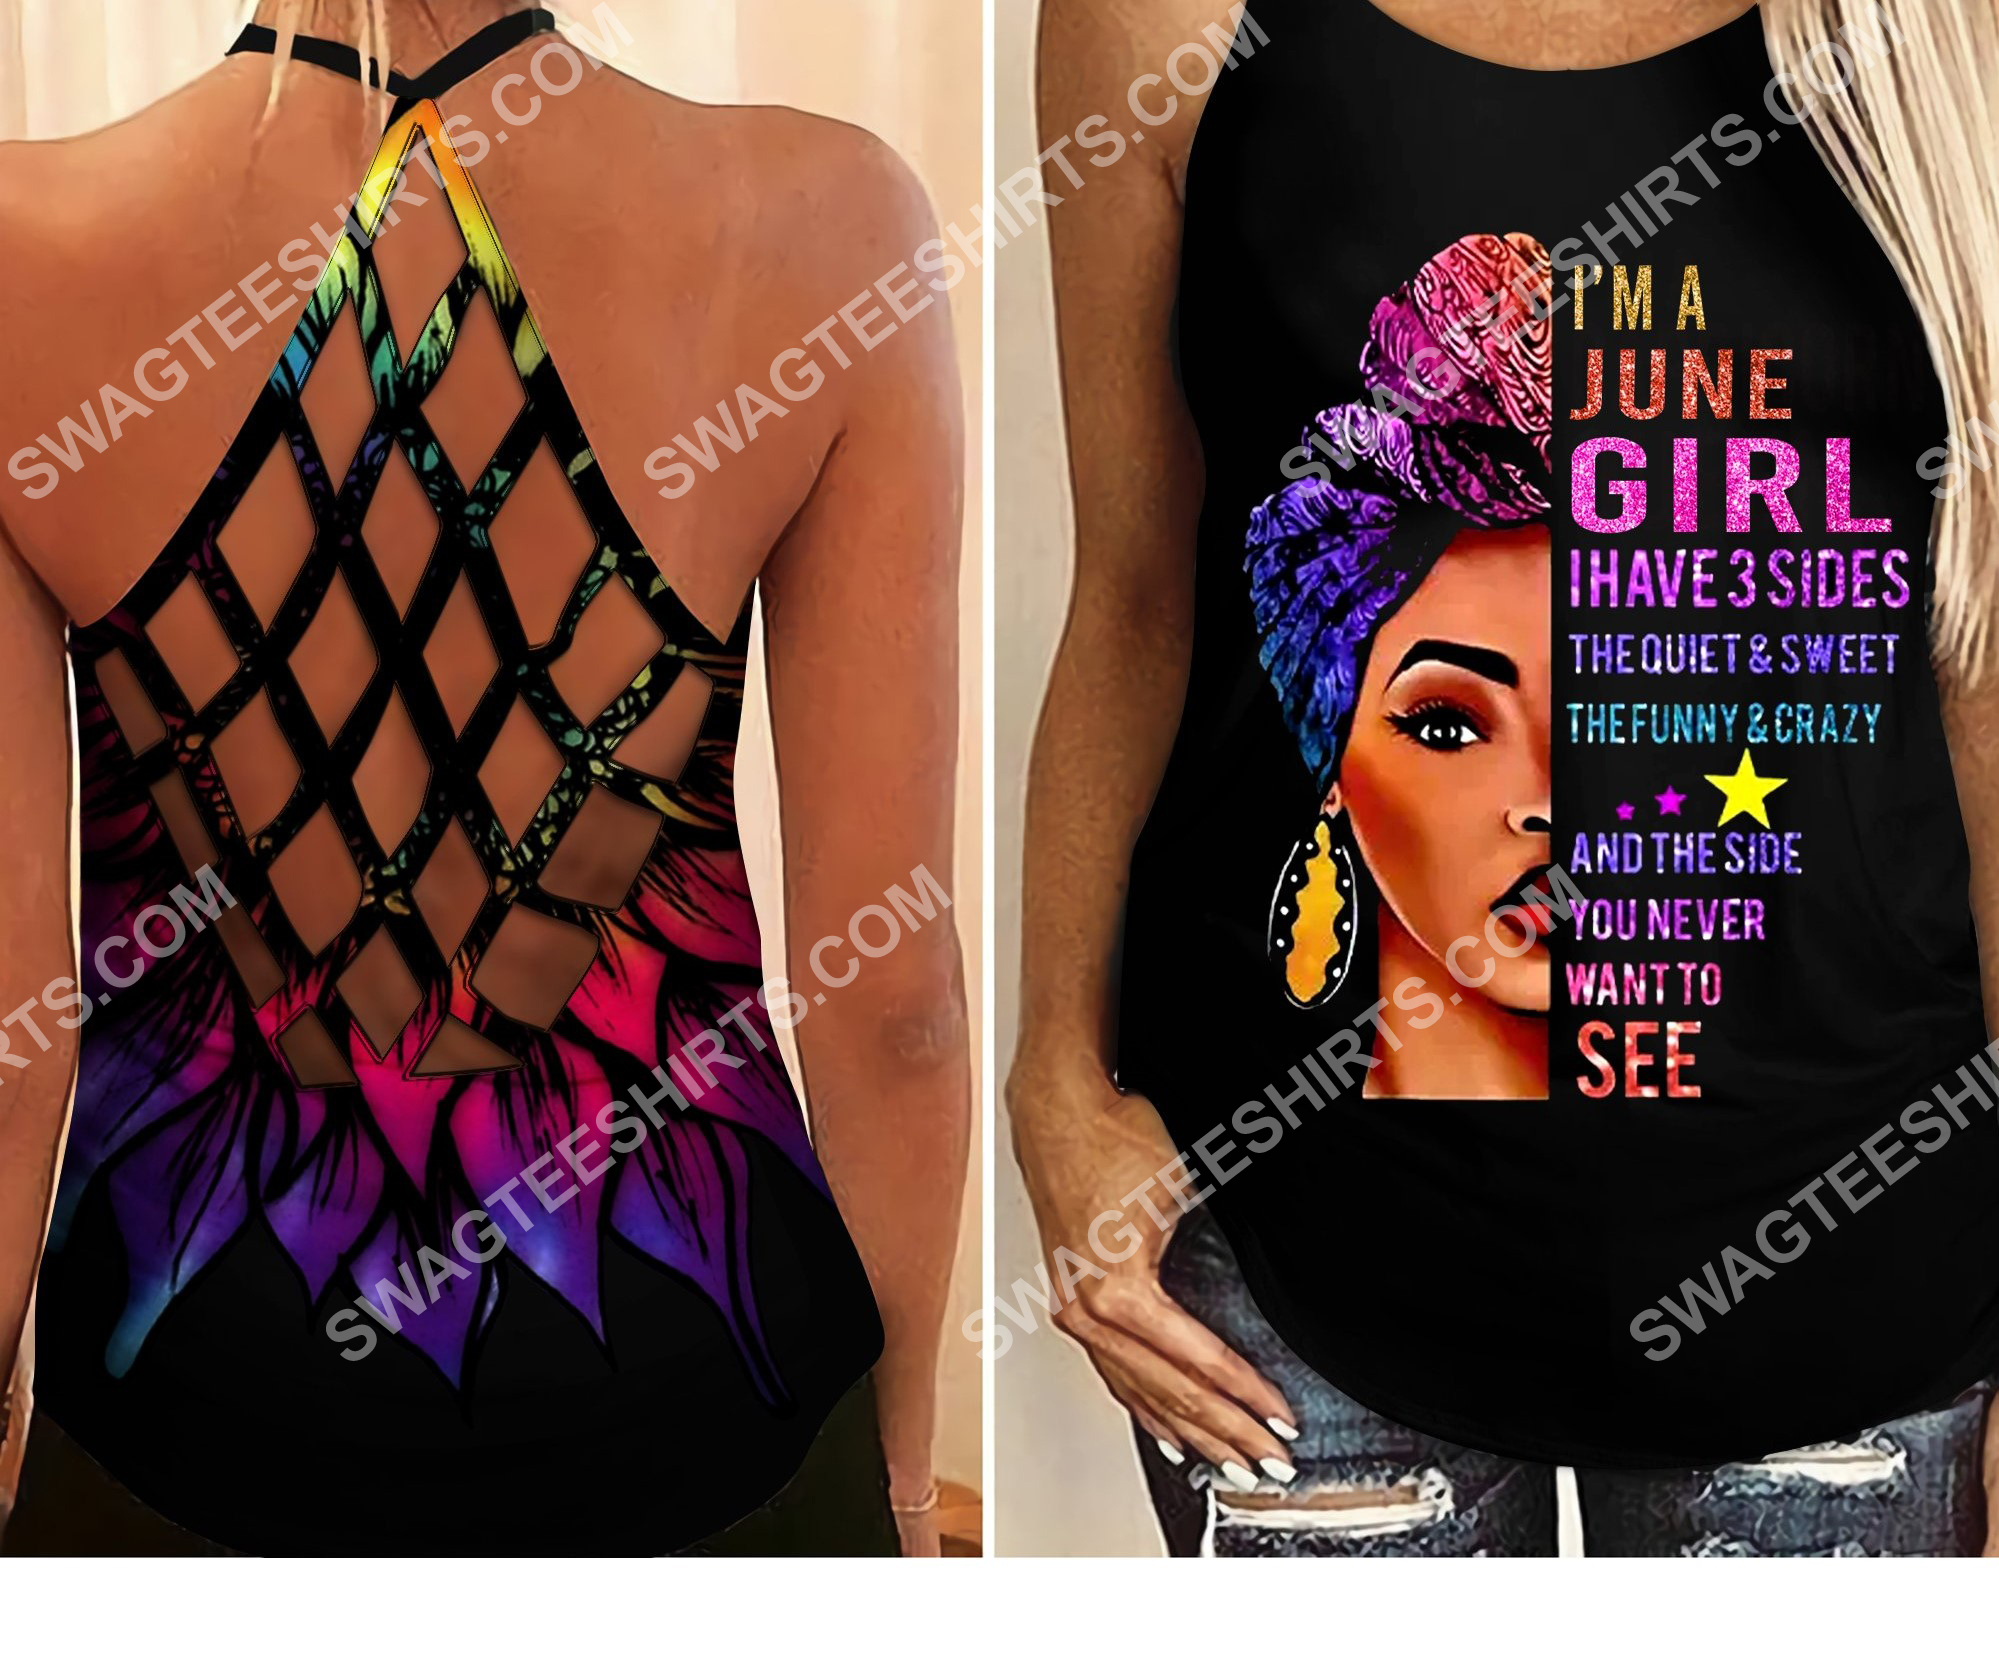 i'm a june girl i have 3 sides the quiet and sweet all over printed criss-cross tank top 2